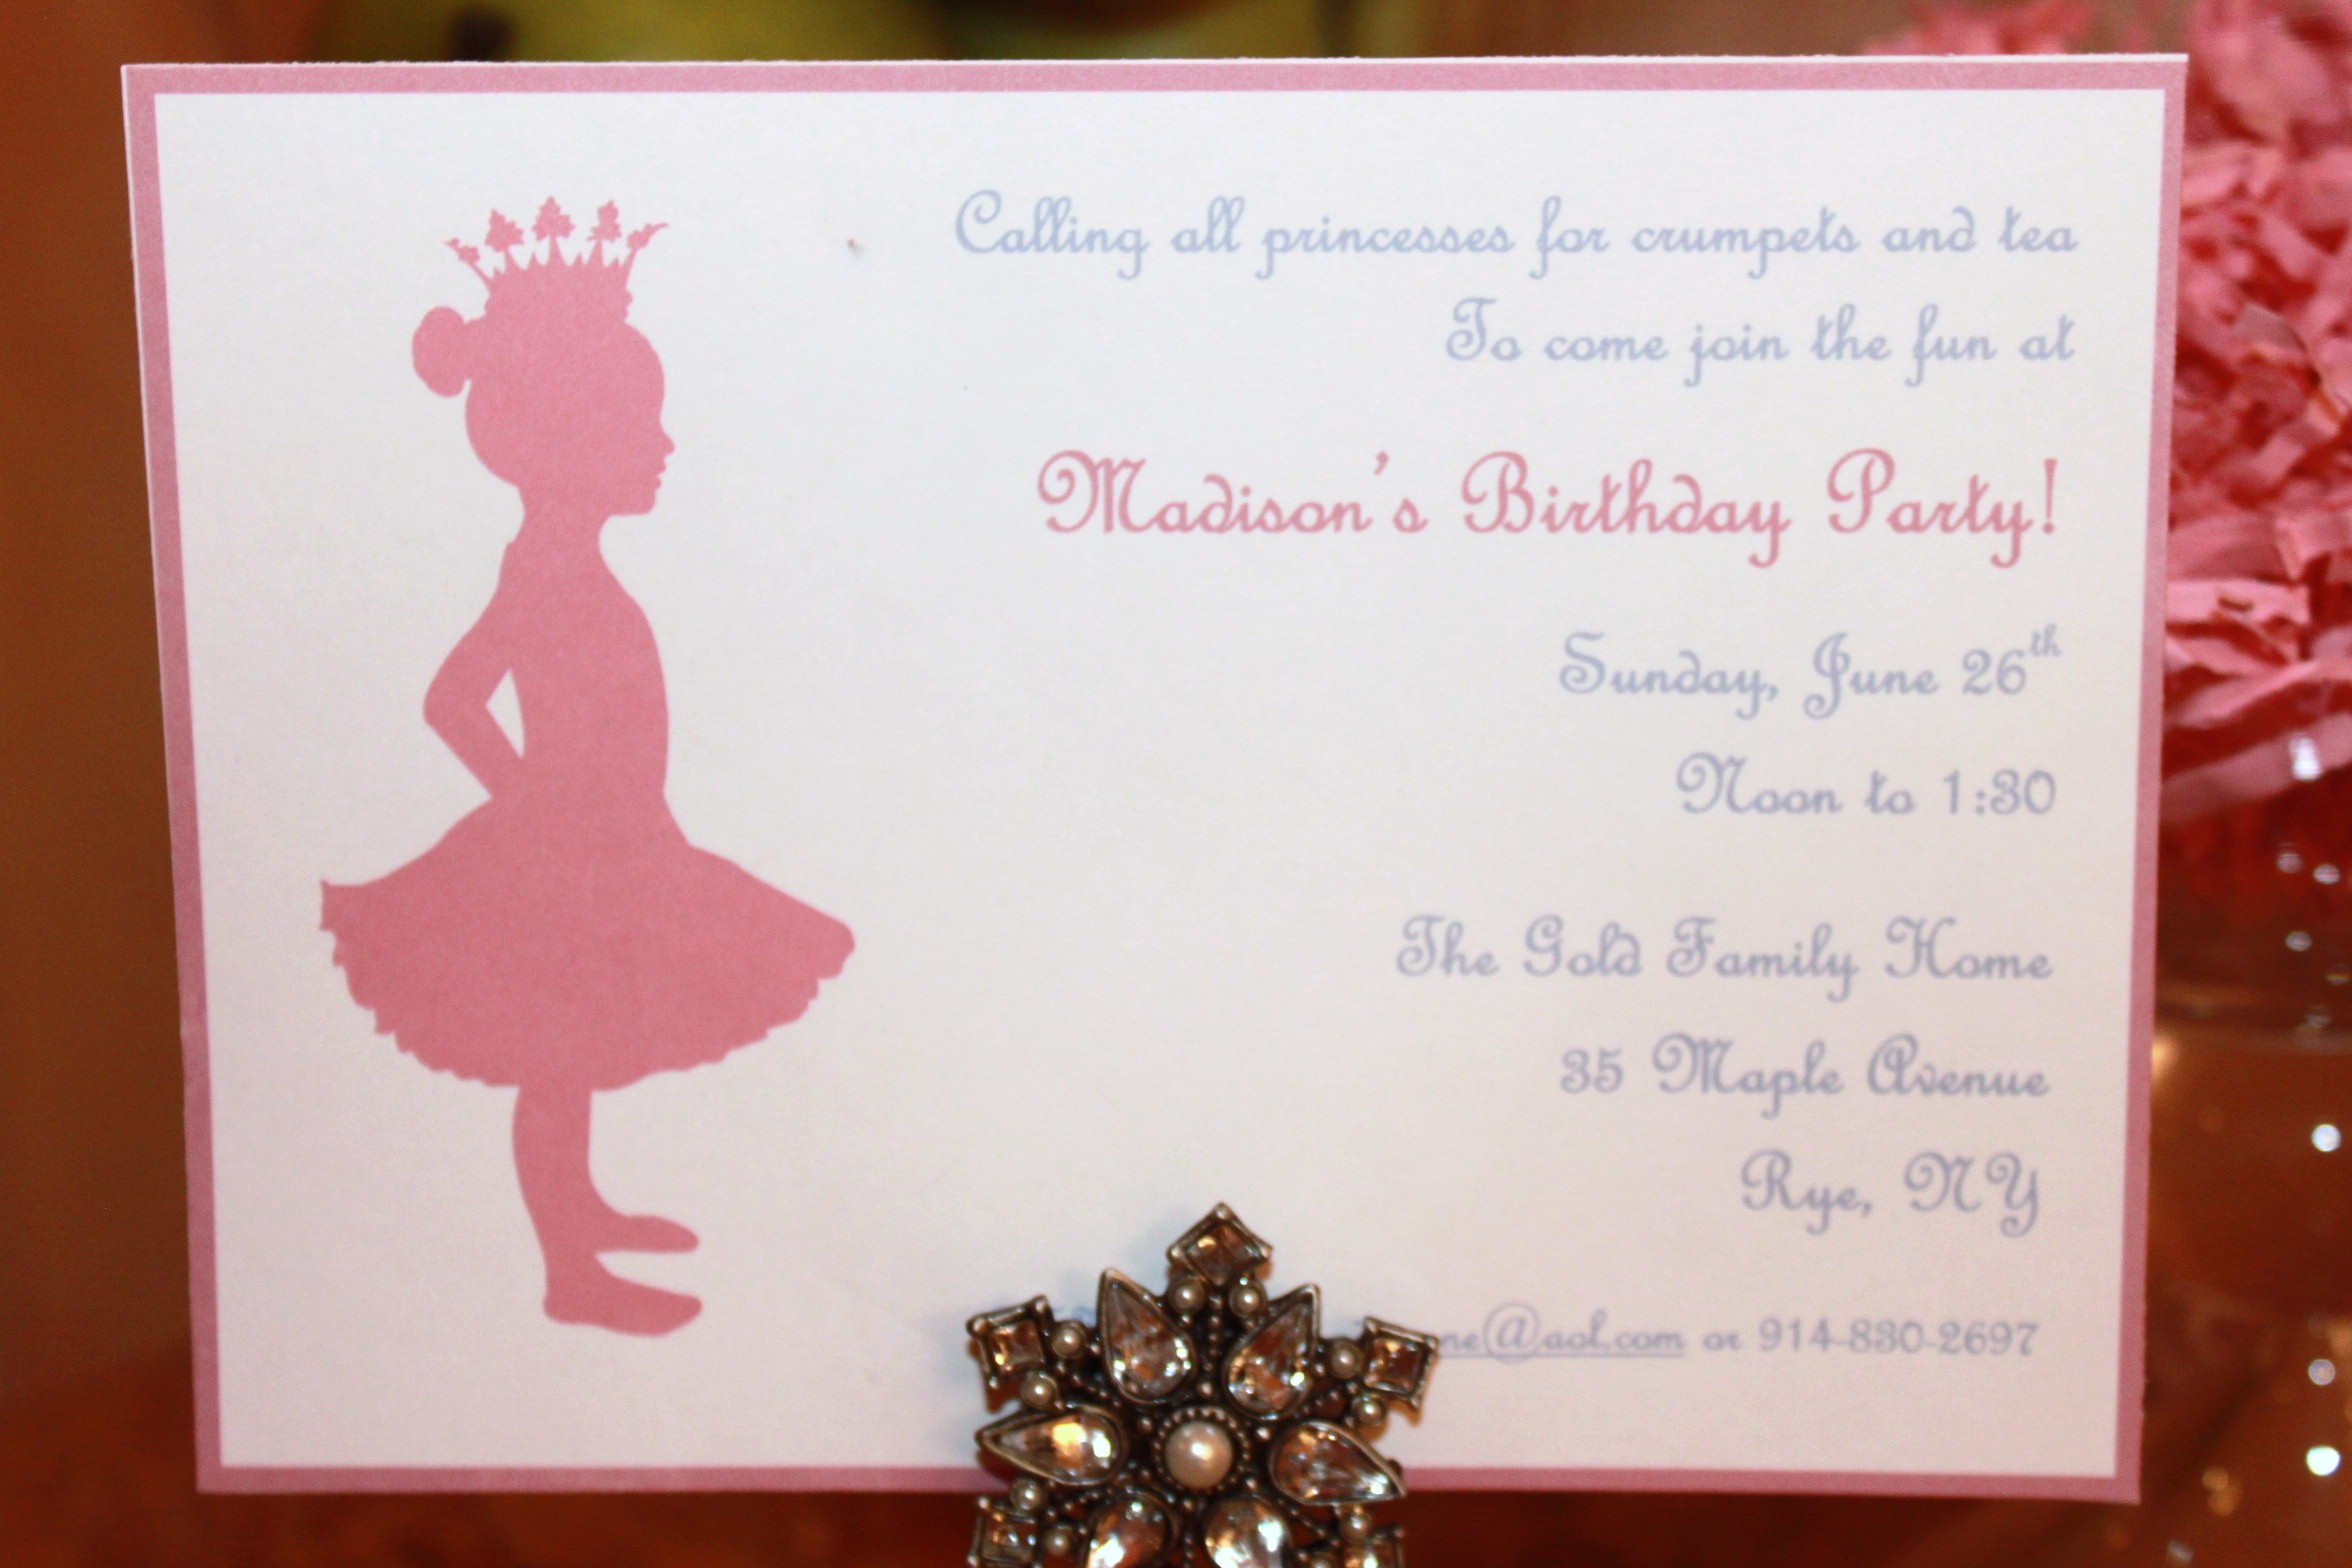 Princess Tea Party – Tea Birthday Party Invitations